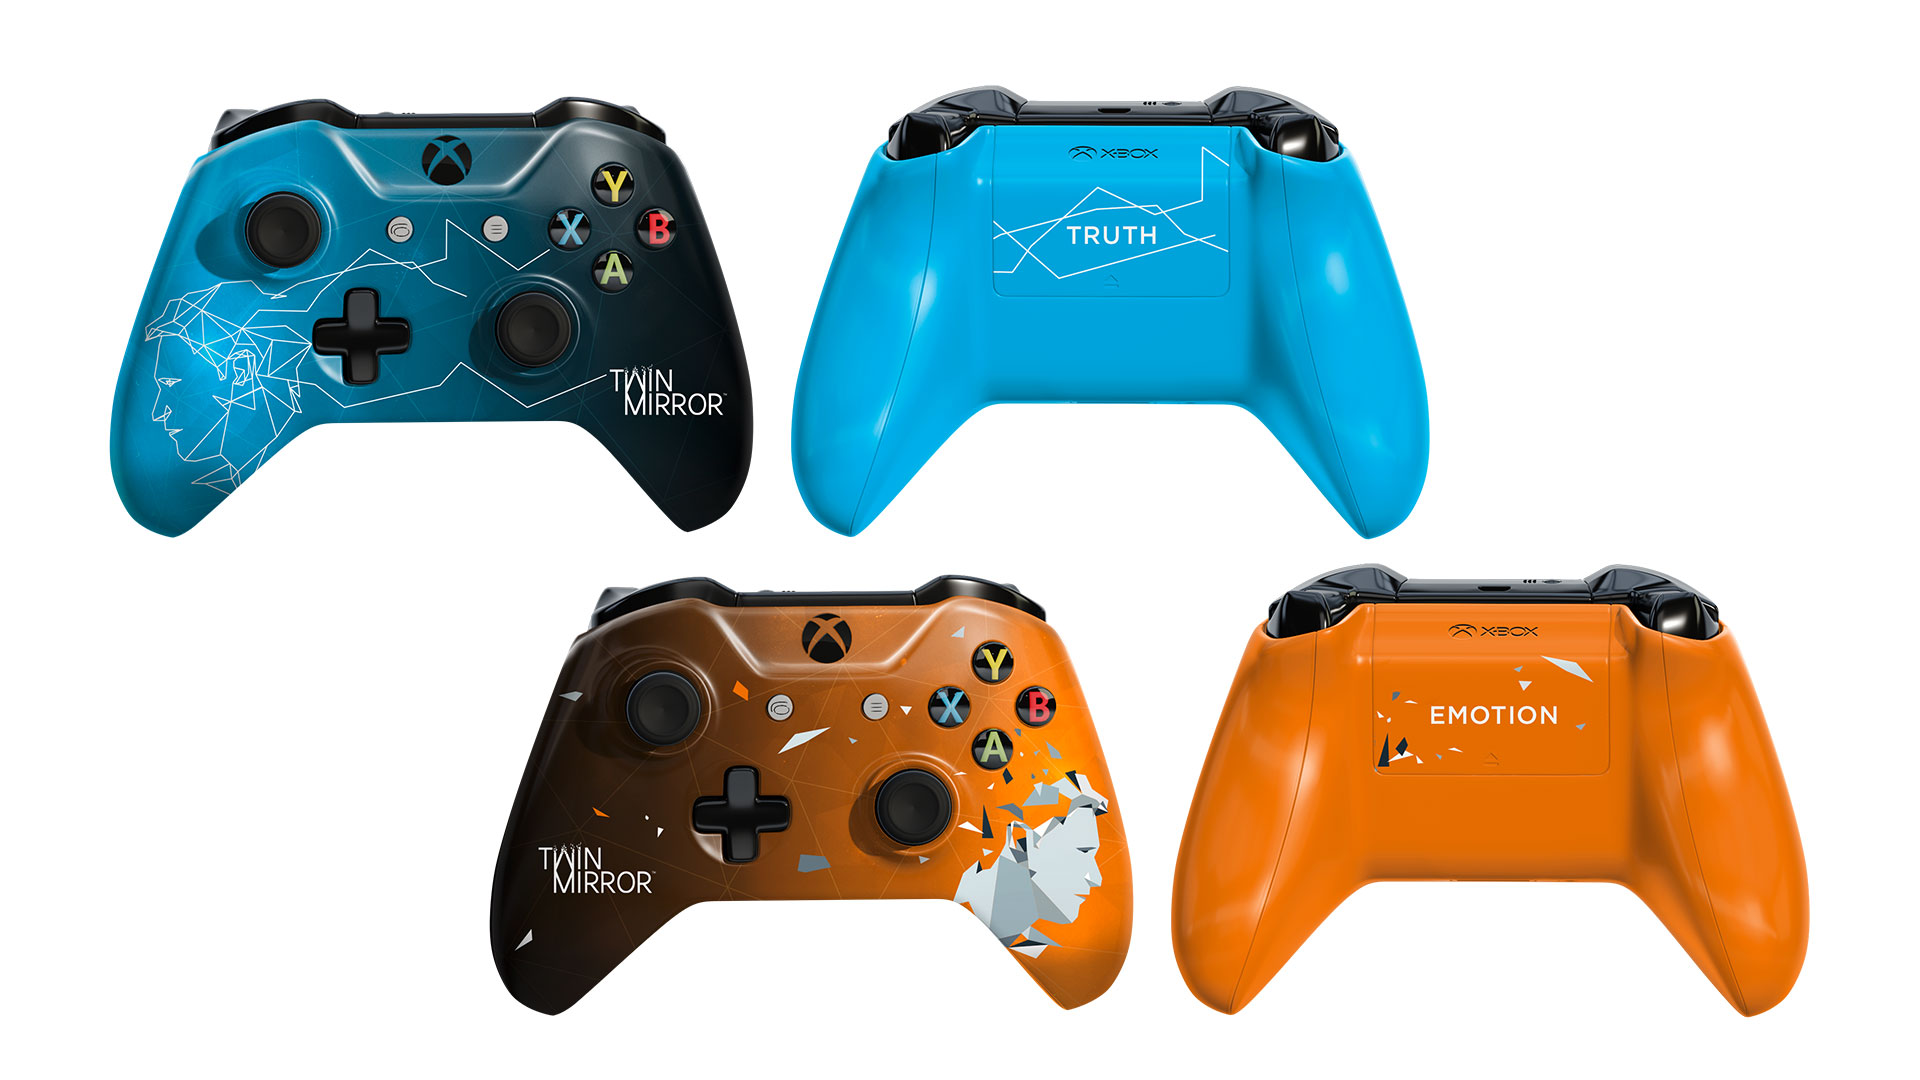 Win a pair of custom Twin Mirror Xbox controllers by entering our Twitter competition